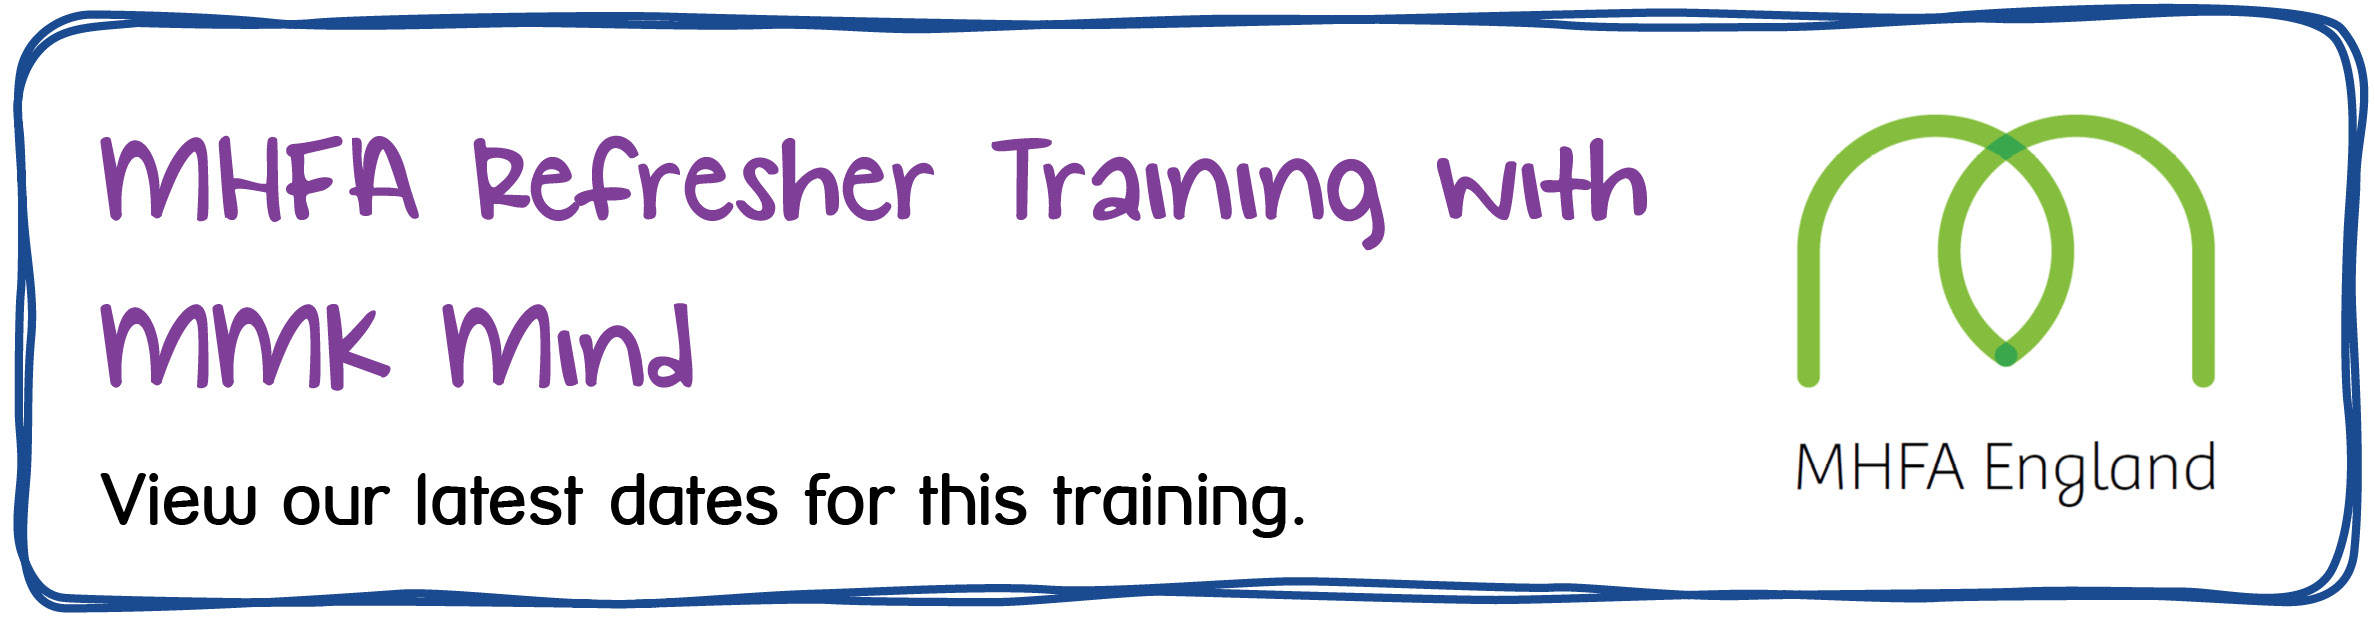 MHFA Refresher Training with MMK Mind. View our latest dates for this training.